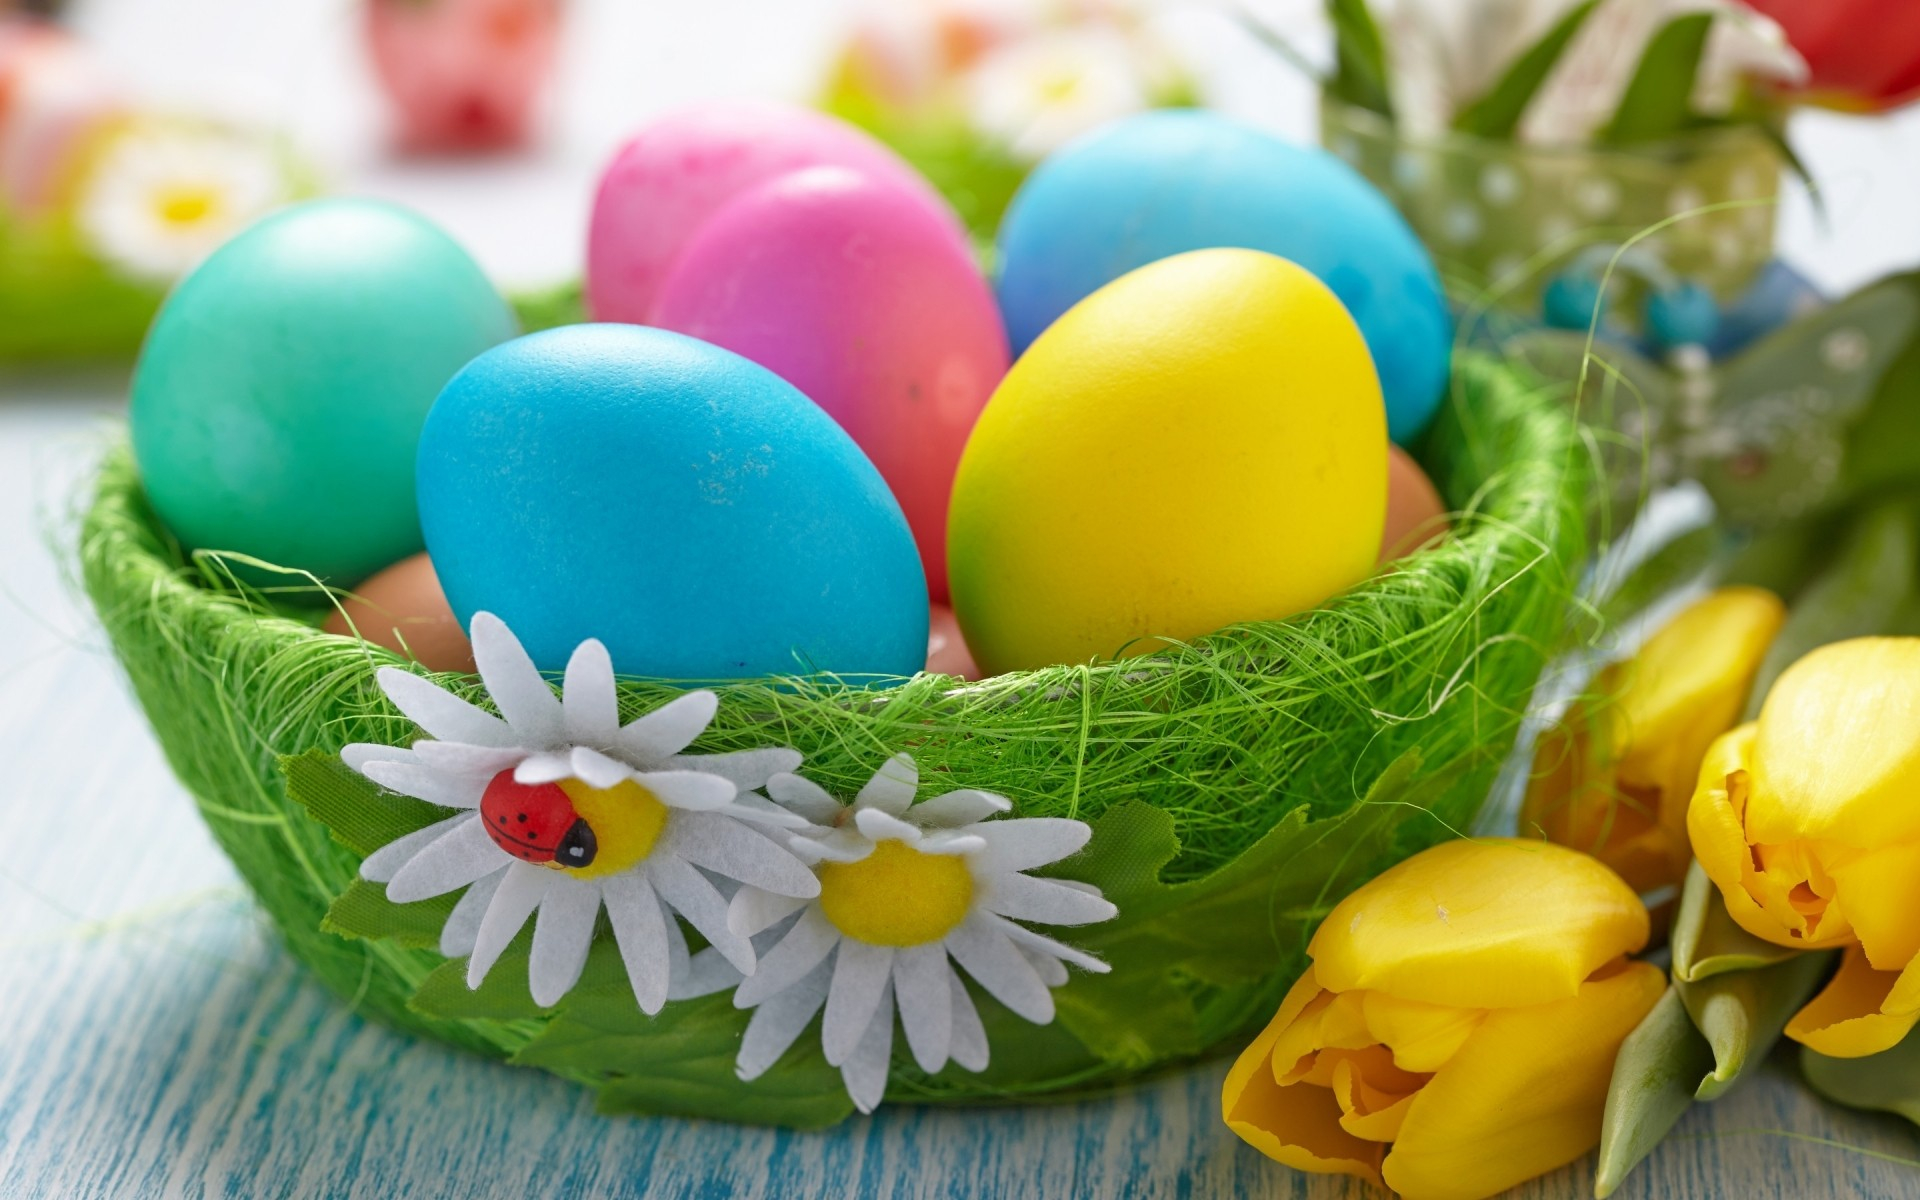 easter egg food candy easter egg nest decoration basket nature celebration confection color bright easter eggs easter 2014 easter eggs 2014 2014 easter eggs